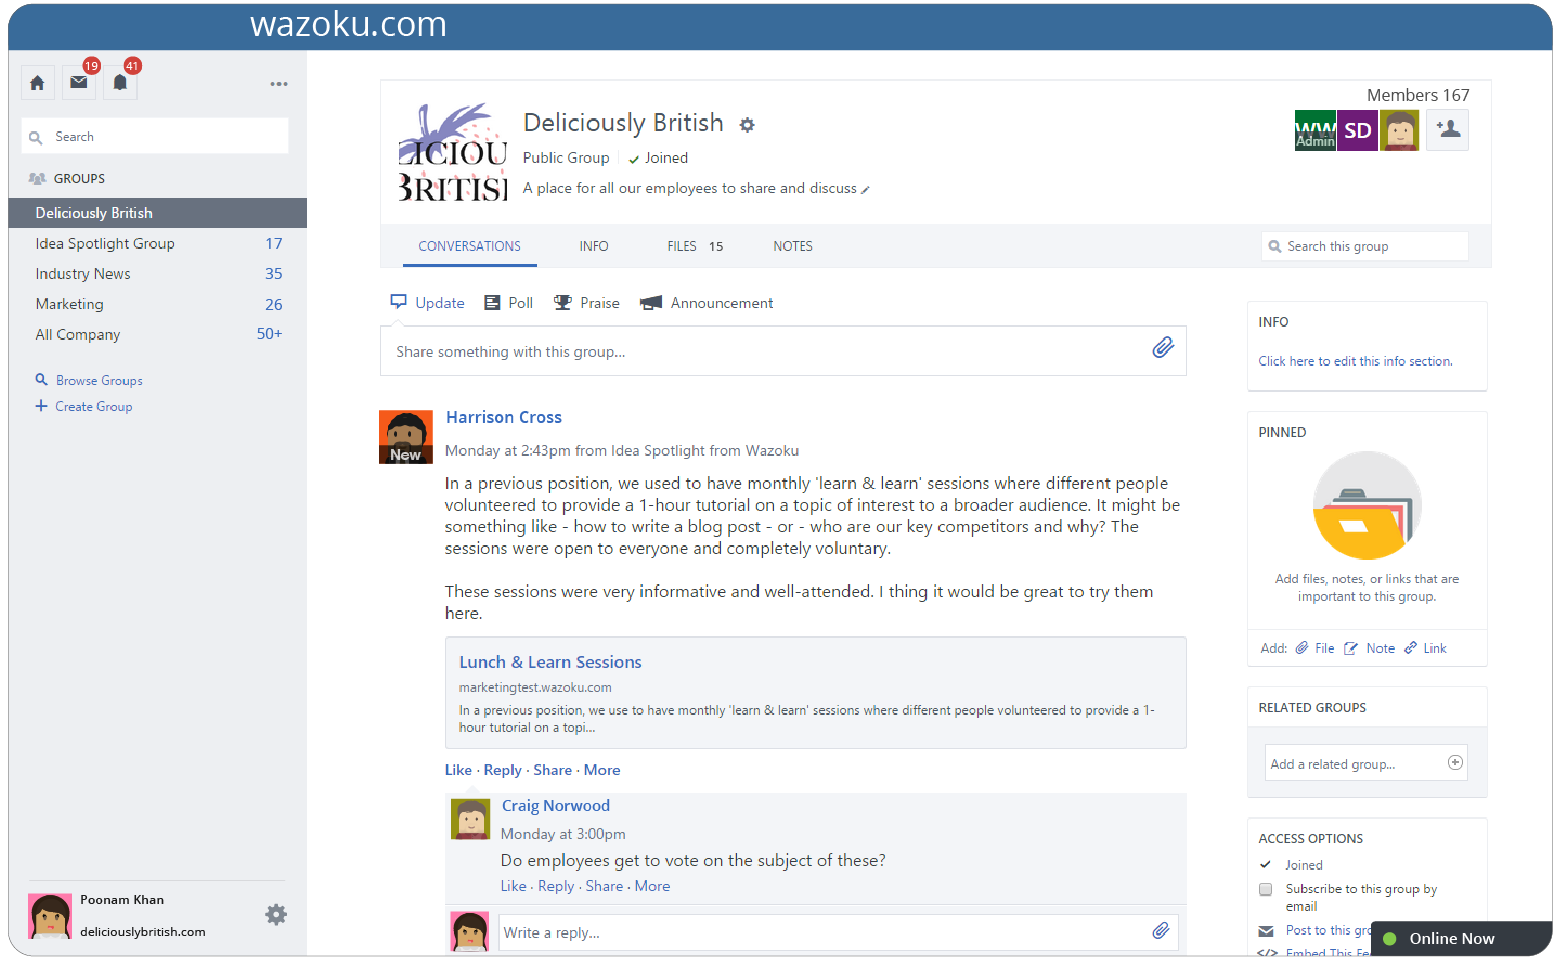 SMALL-yammer-homepage-deliciously-british-NEW-SCREENSHOTS-05-04